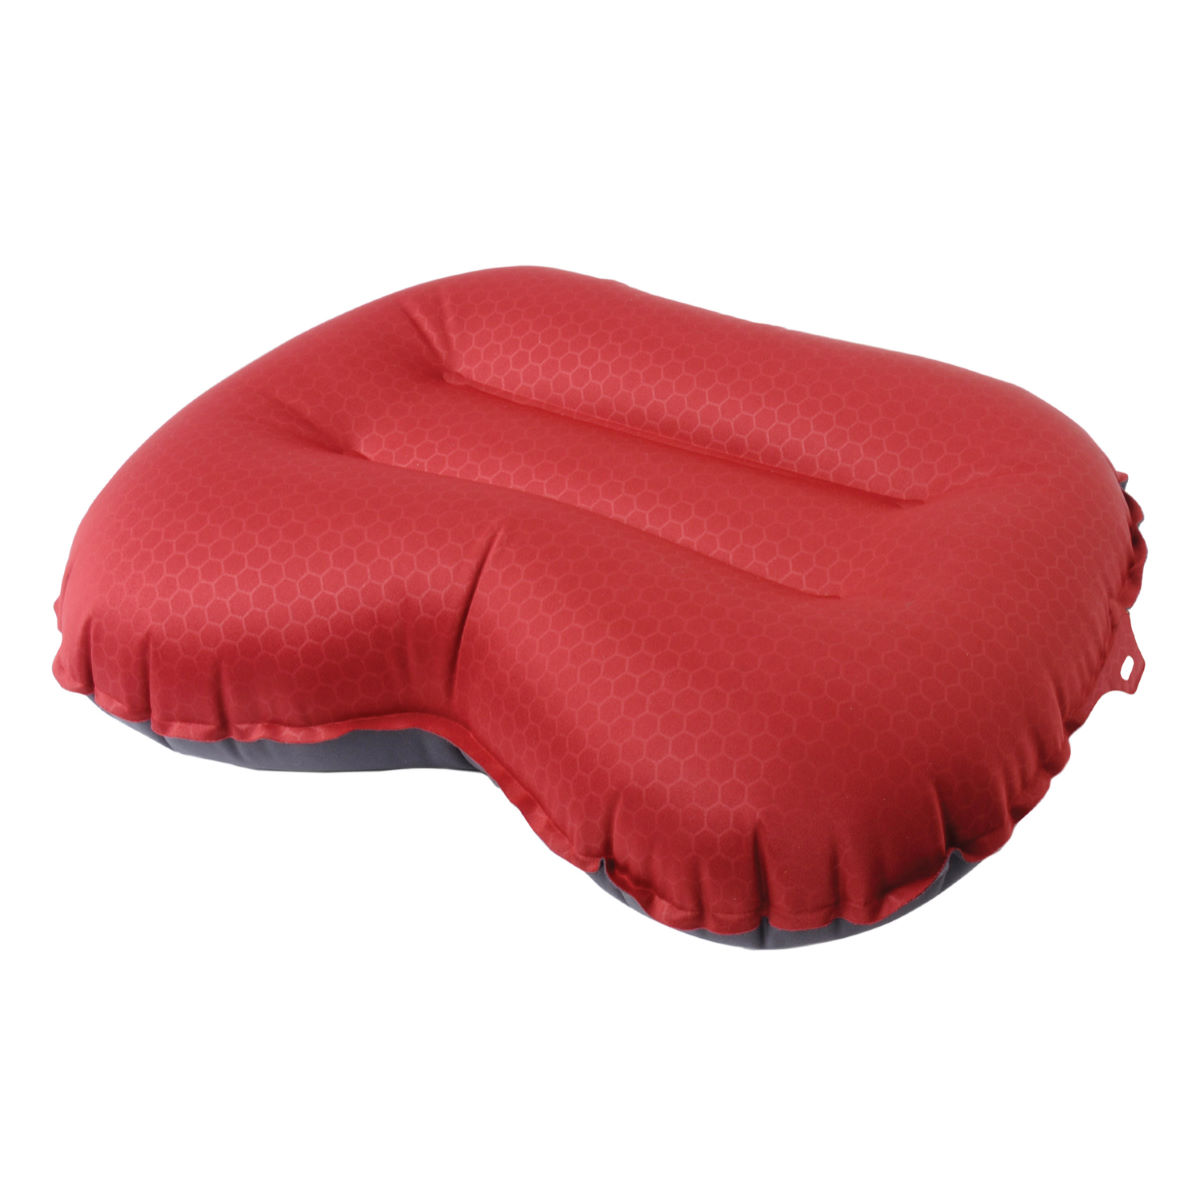 Exped Air Pillow XL - Almohadas